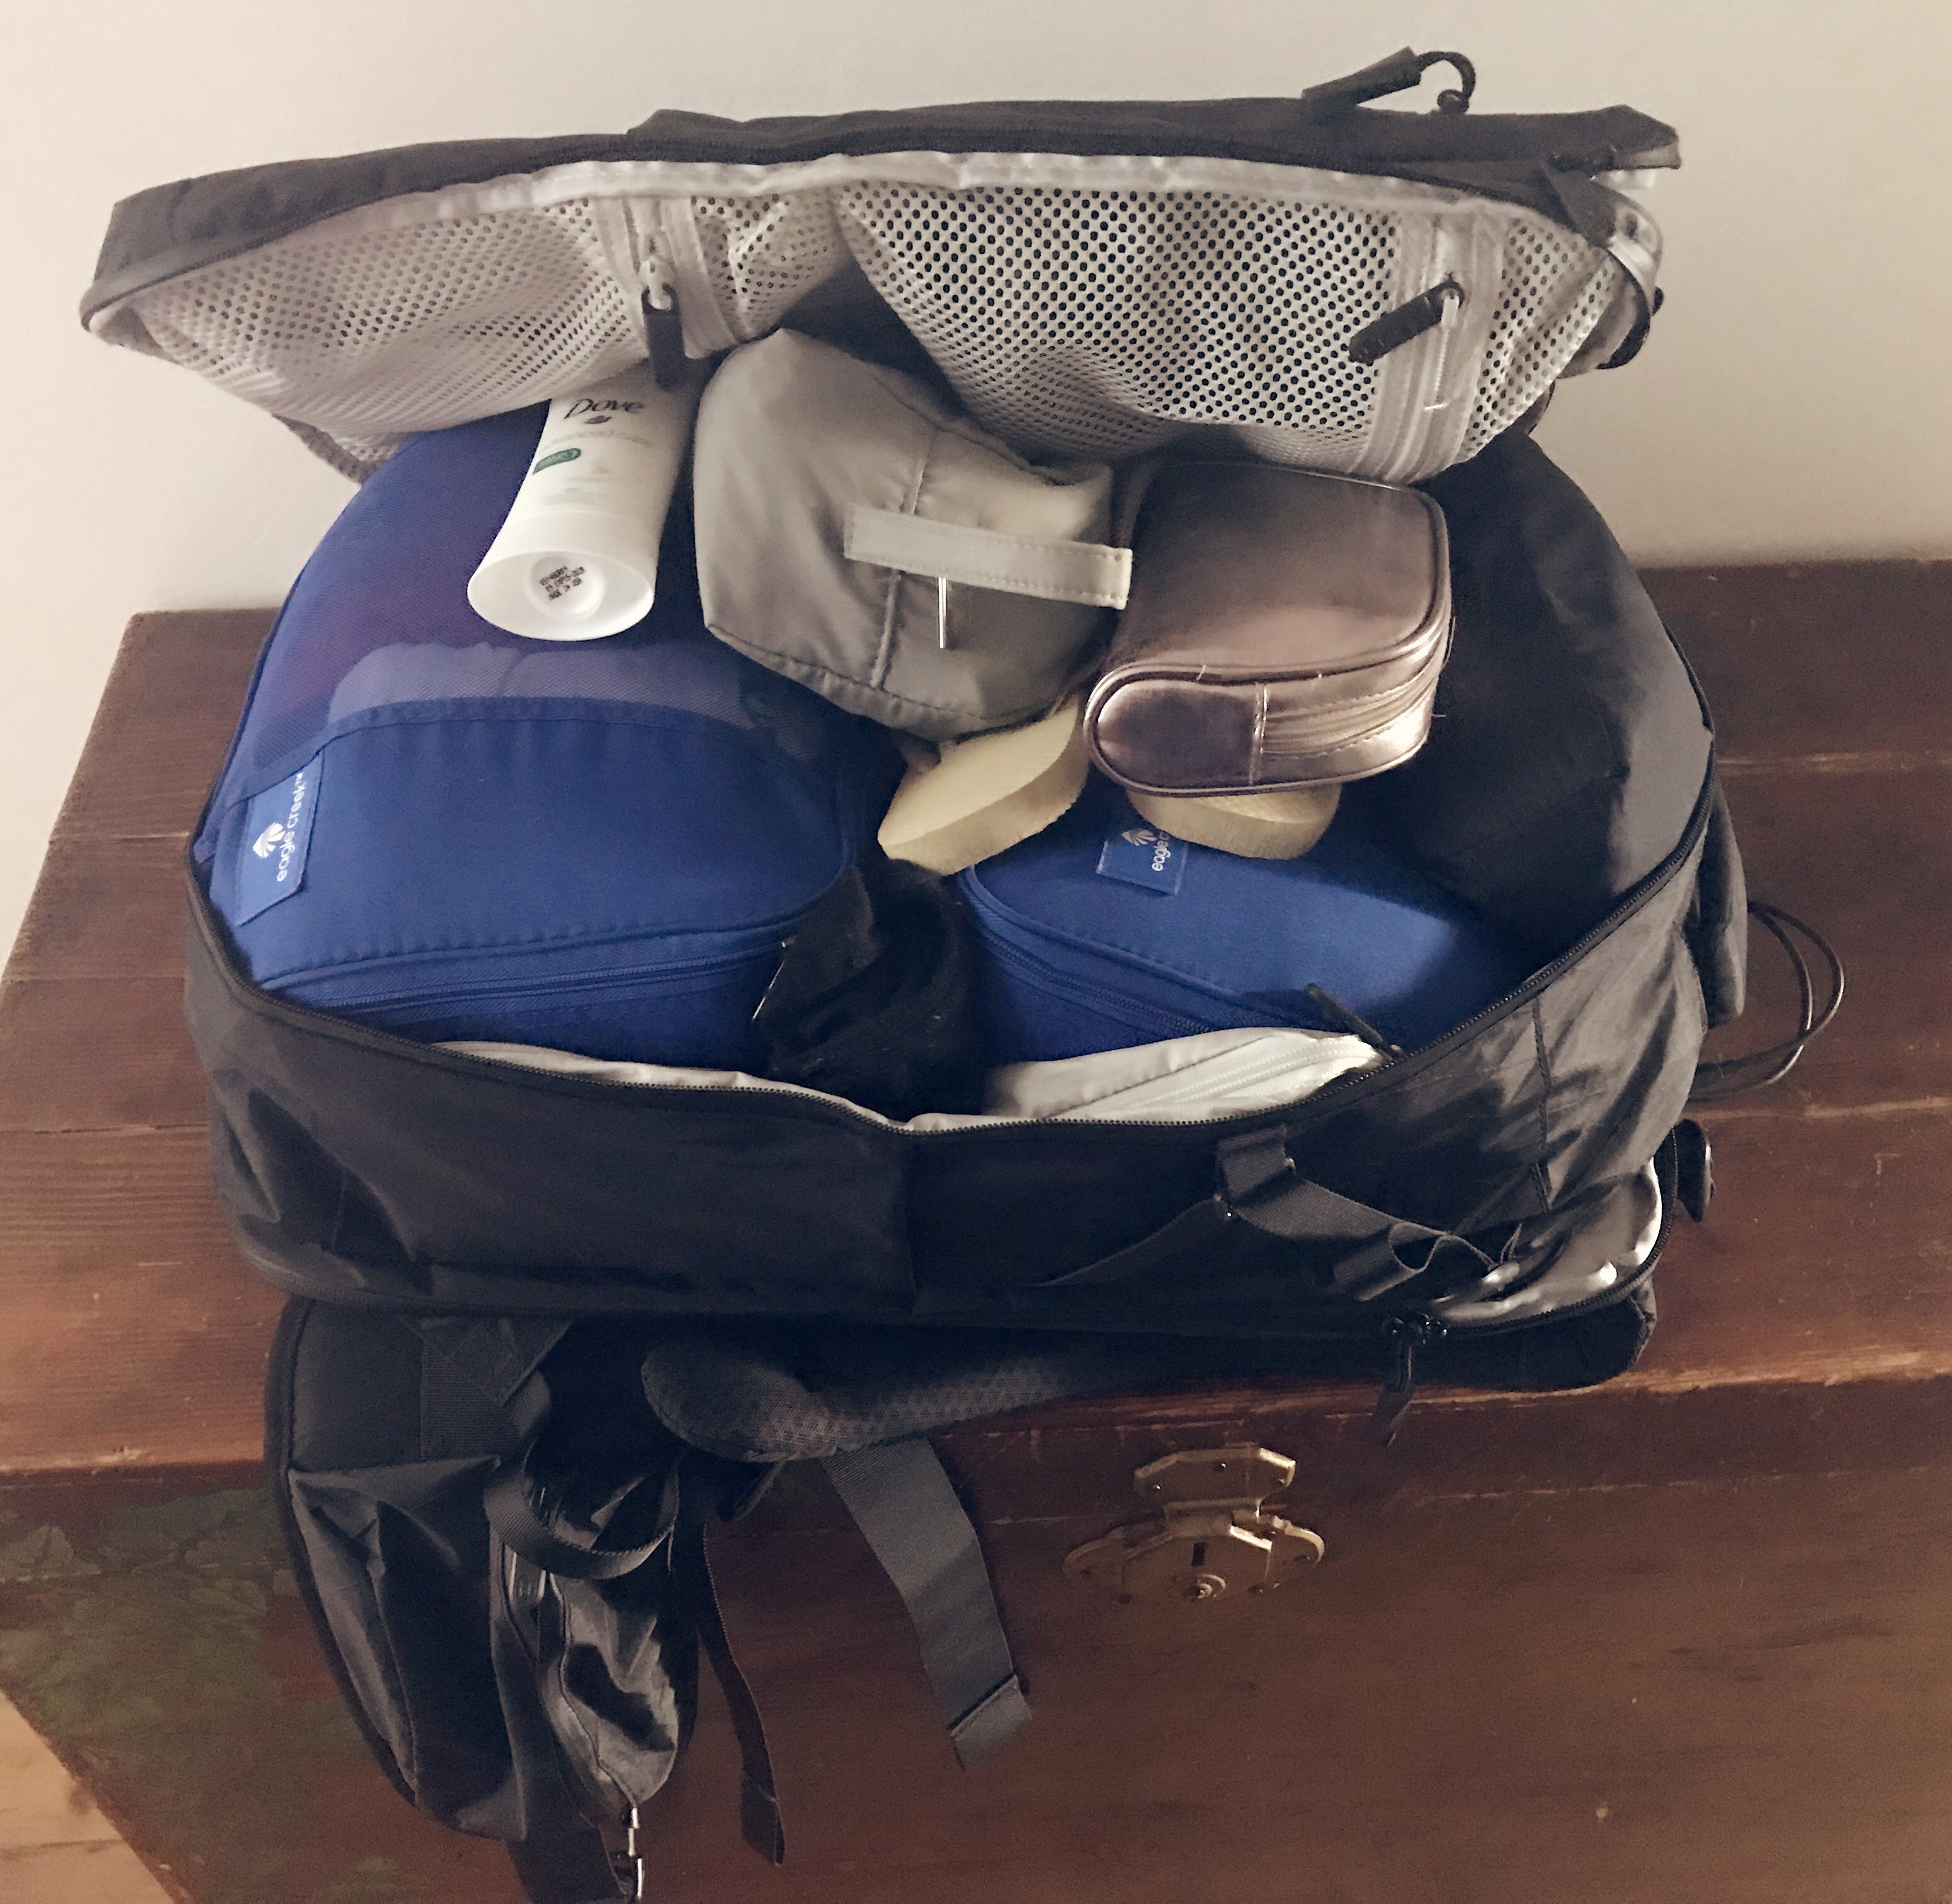 Packing for a long trip